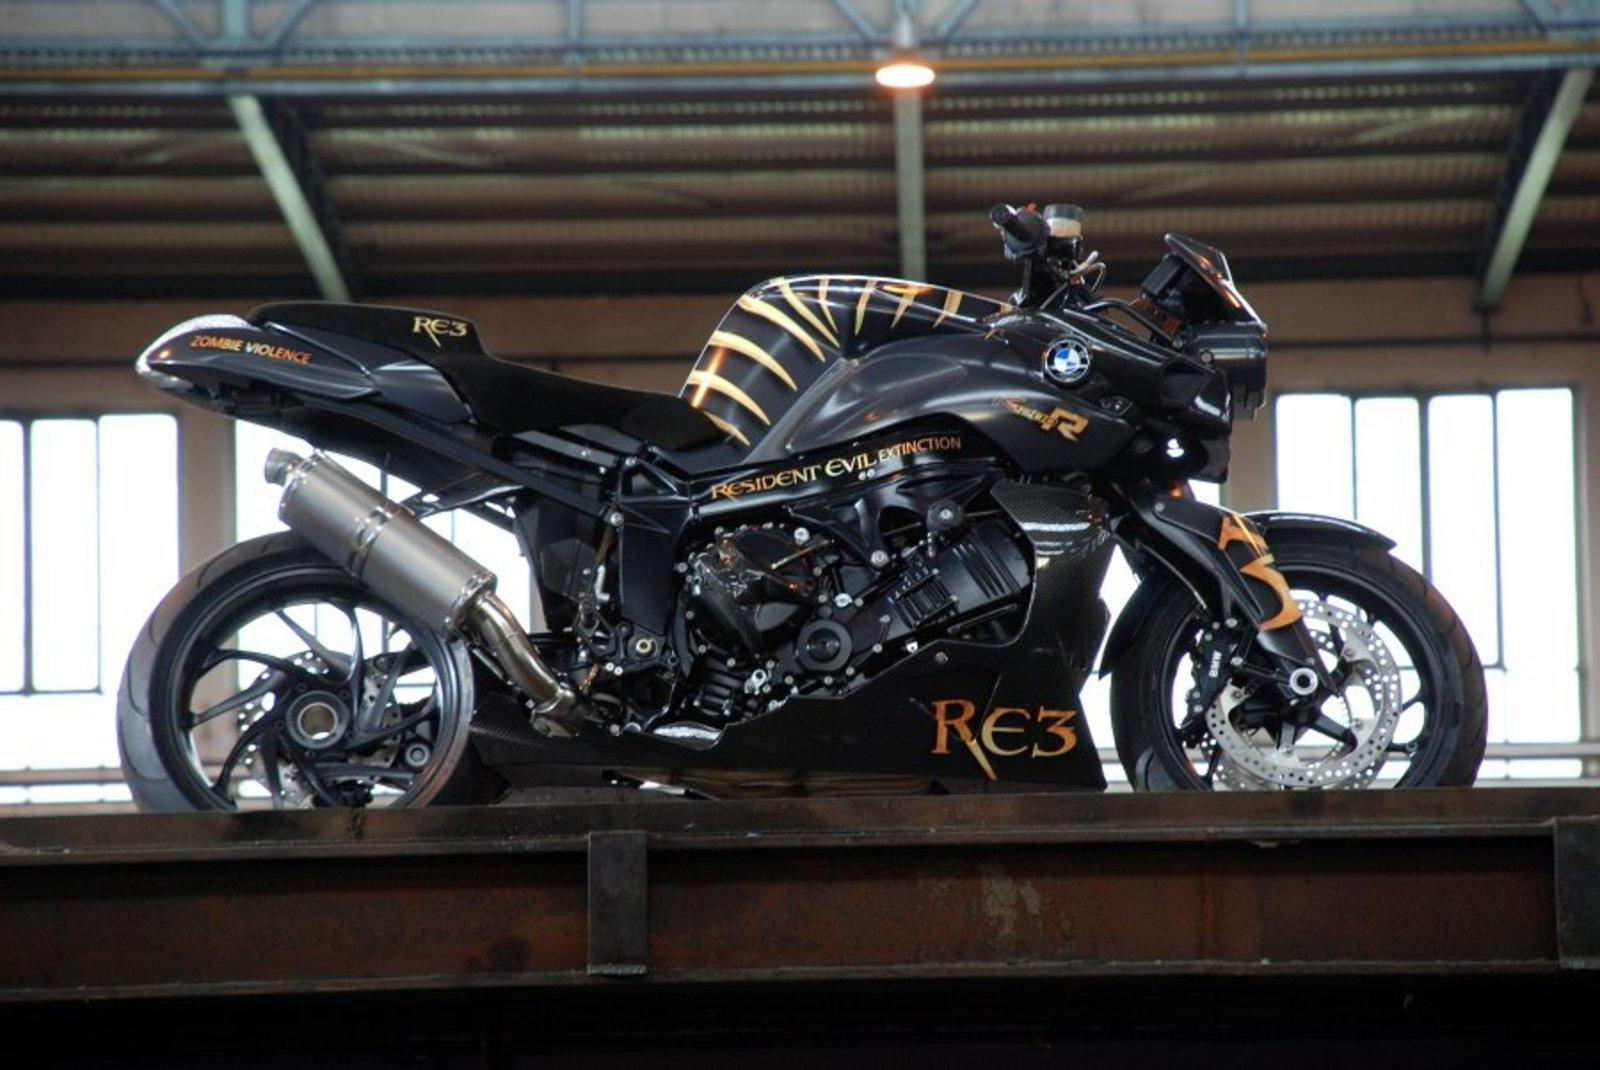 nice artwork bmw k1200r re3 news top speed. Black Bedroom Furniture Sets. Home Design Ideas